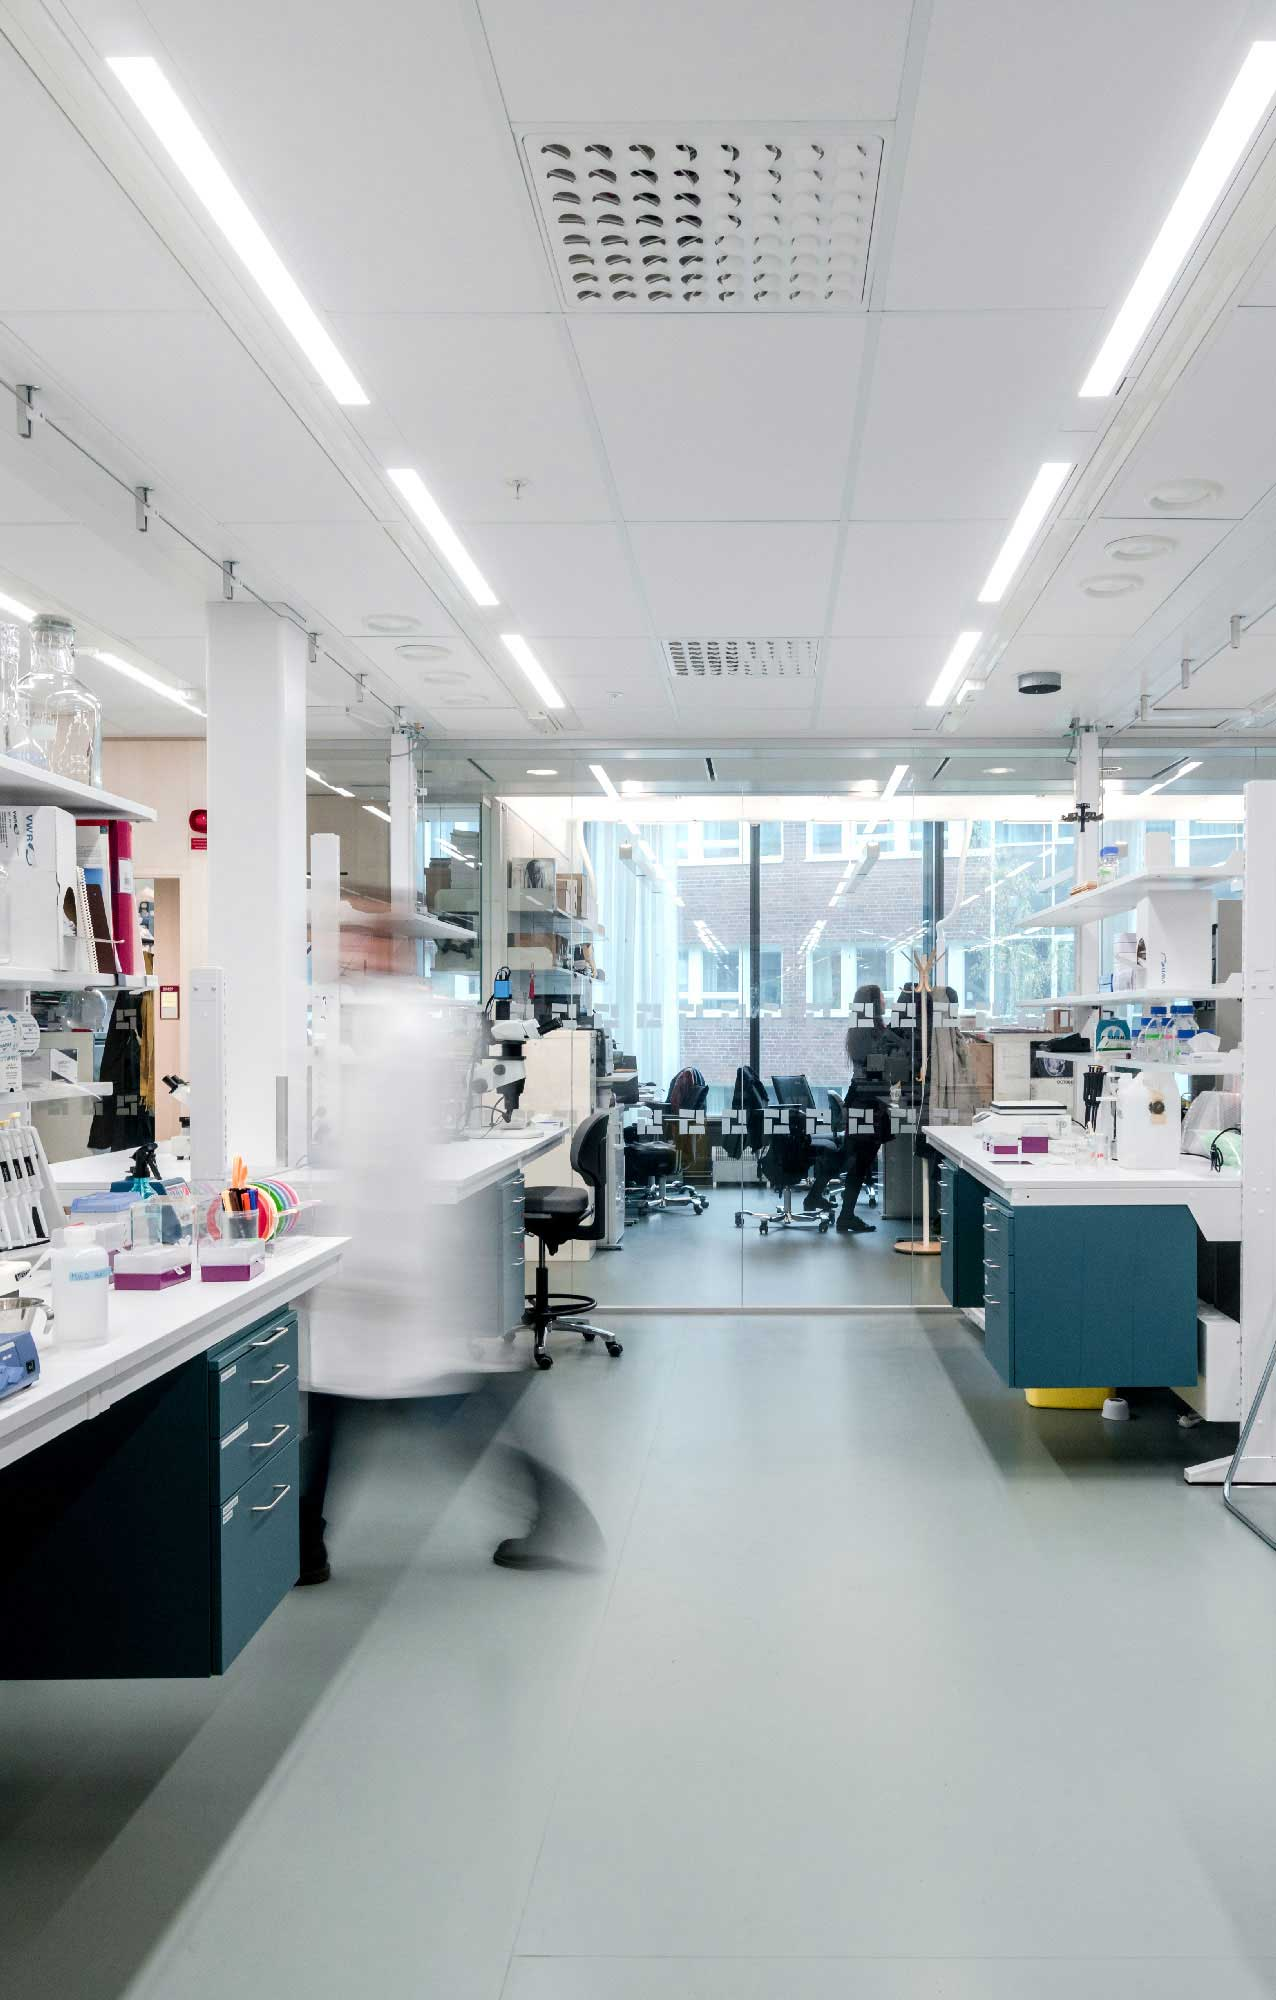 Pavimenti interni moderni di design - Biomedicum – Karolinska Institute